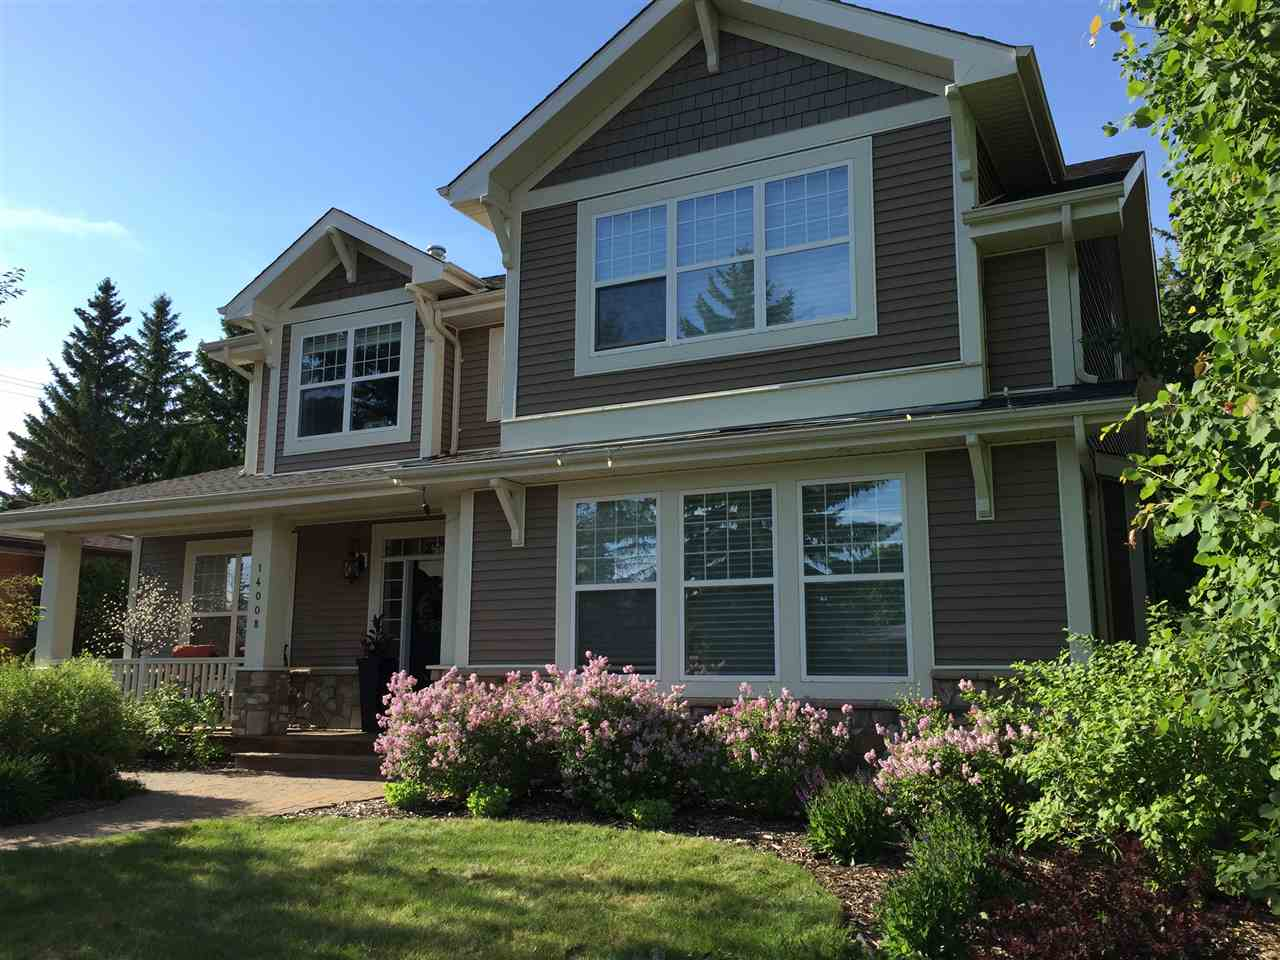 14008 85 Avenue NW, 4 bed, 4 bath, at $1,529,000